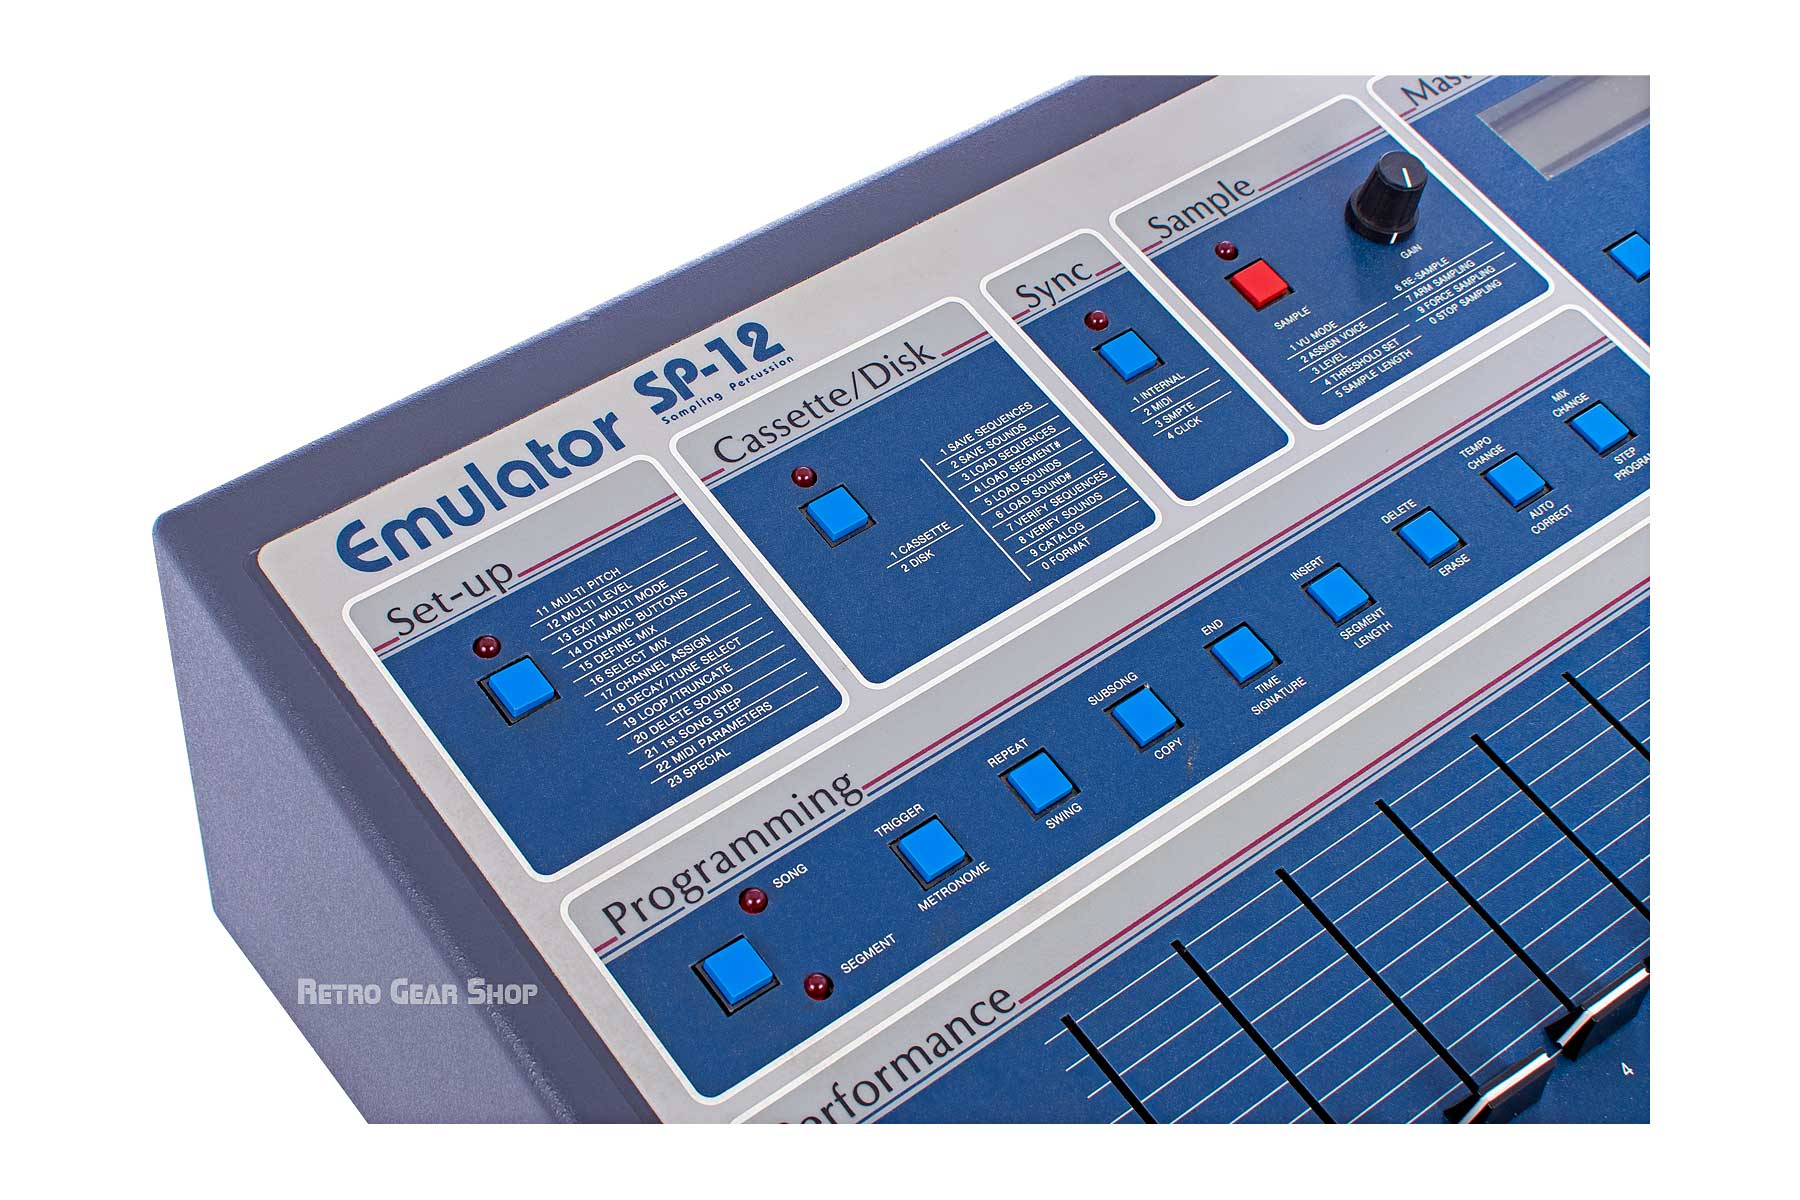 Emu SP-12 Turbo #14 Sampling Percussion